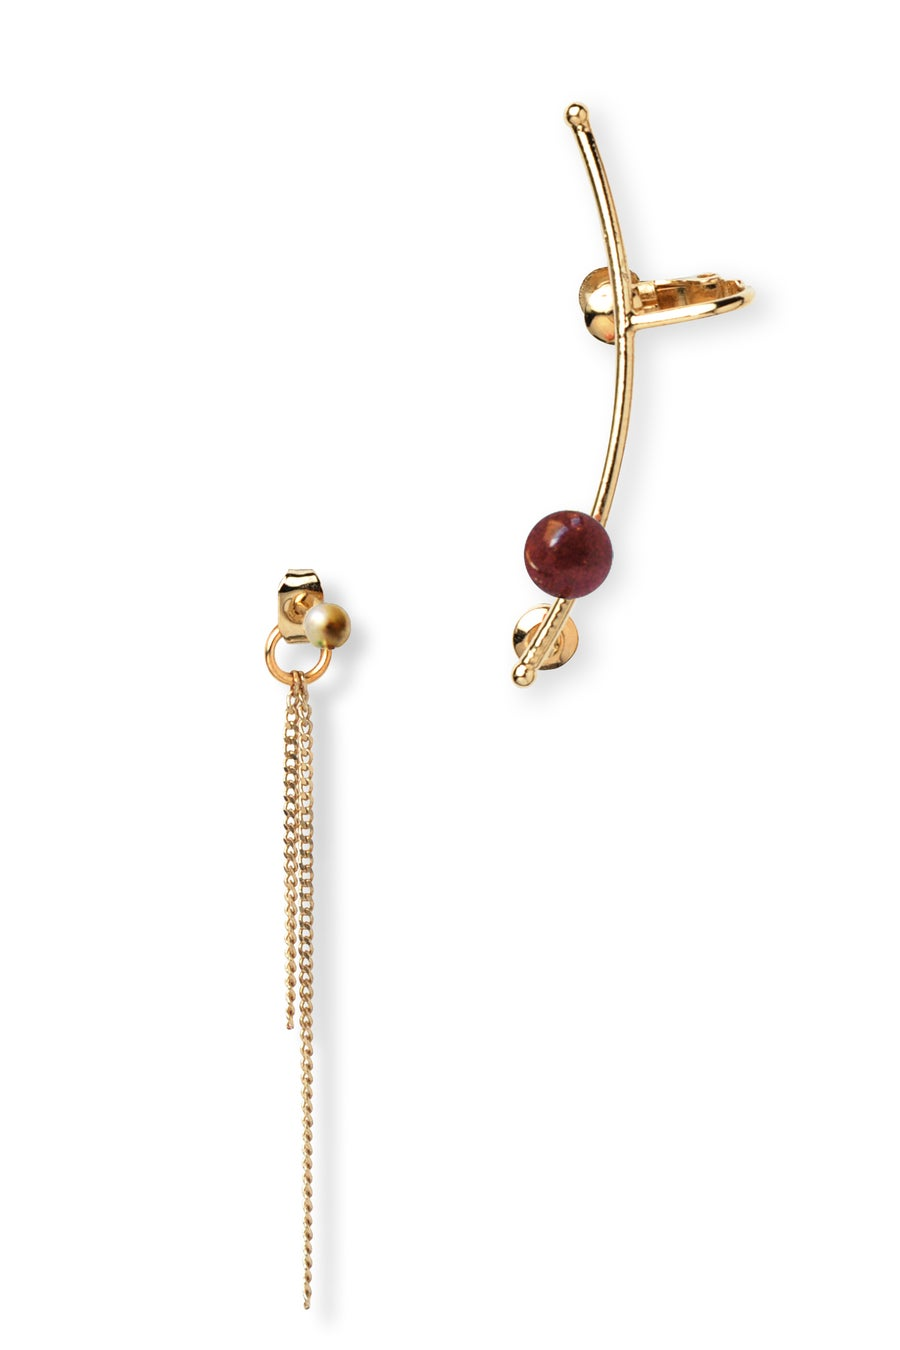 Image of Boucles d'oreilles<br>BUBBLE EARCUFF